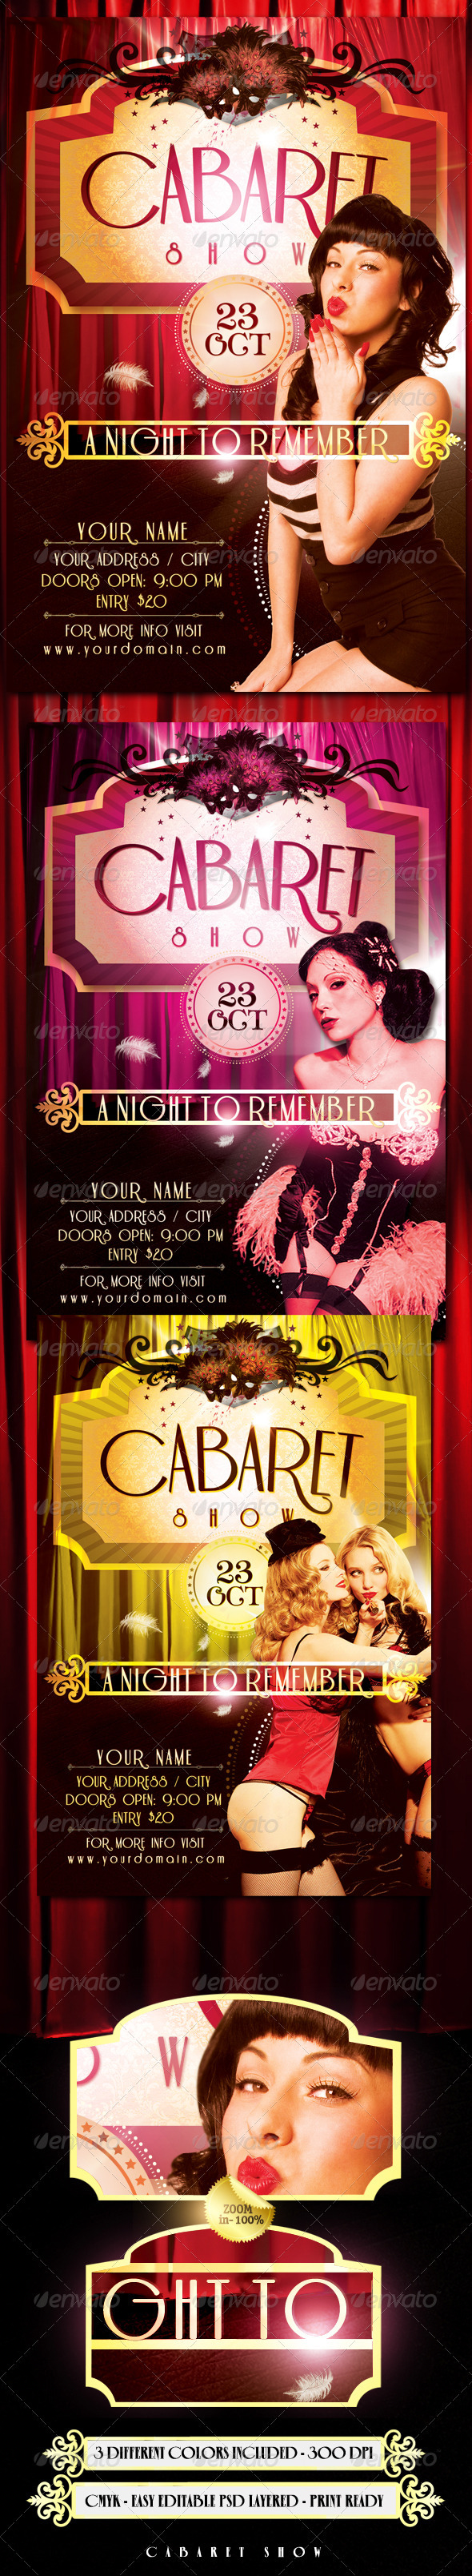 Cabaret Show Flyer Template - Clubs & Parties Events